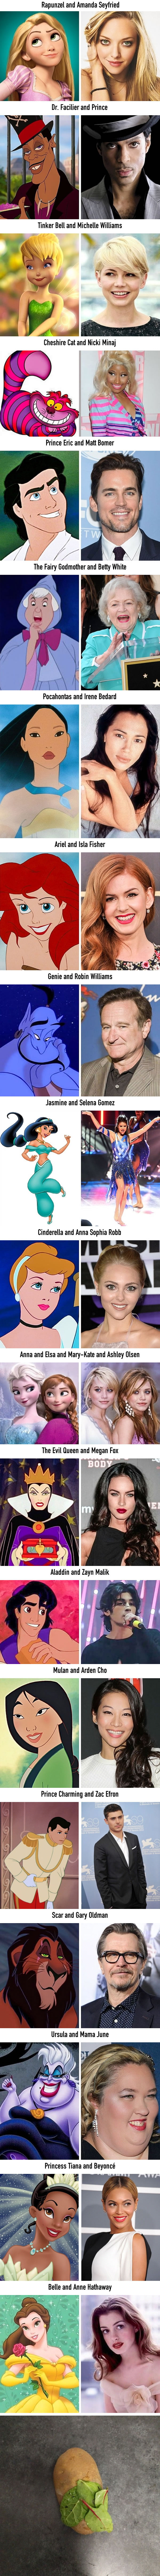 20 celebrities who look exactly like Disney characters